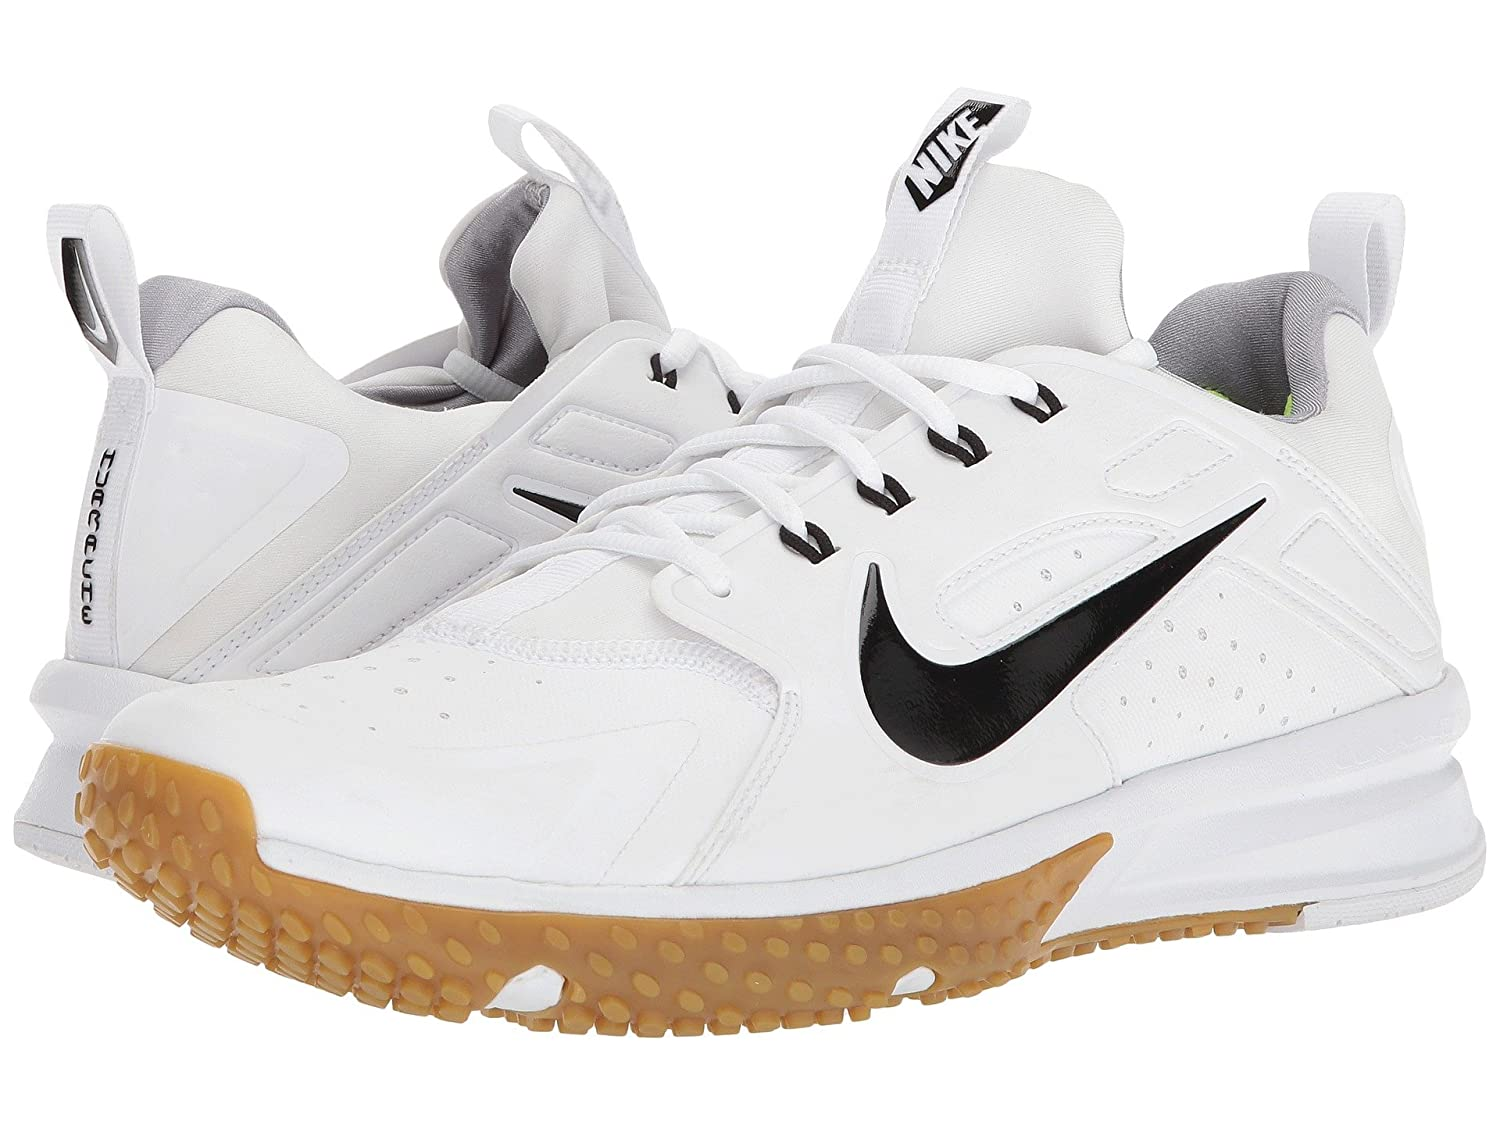 (ナイキ) NIKE メンズ野球ベースボールシューズ靴 Alpha Huarache Turf White/Black/Gum Light Brown/Wolf Grey 8 (26cm) D Medium B078Q1VS7P